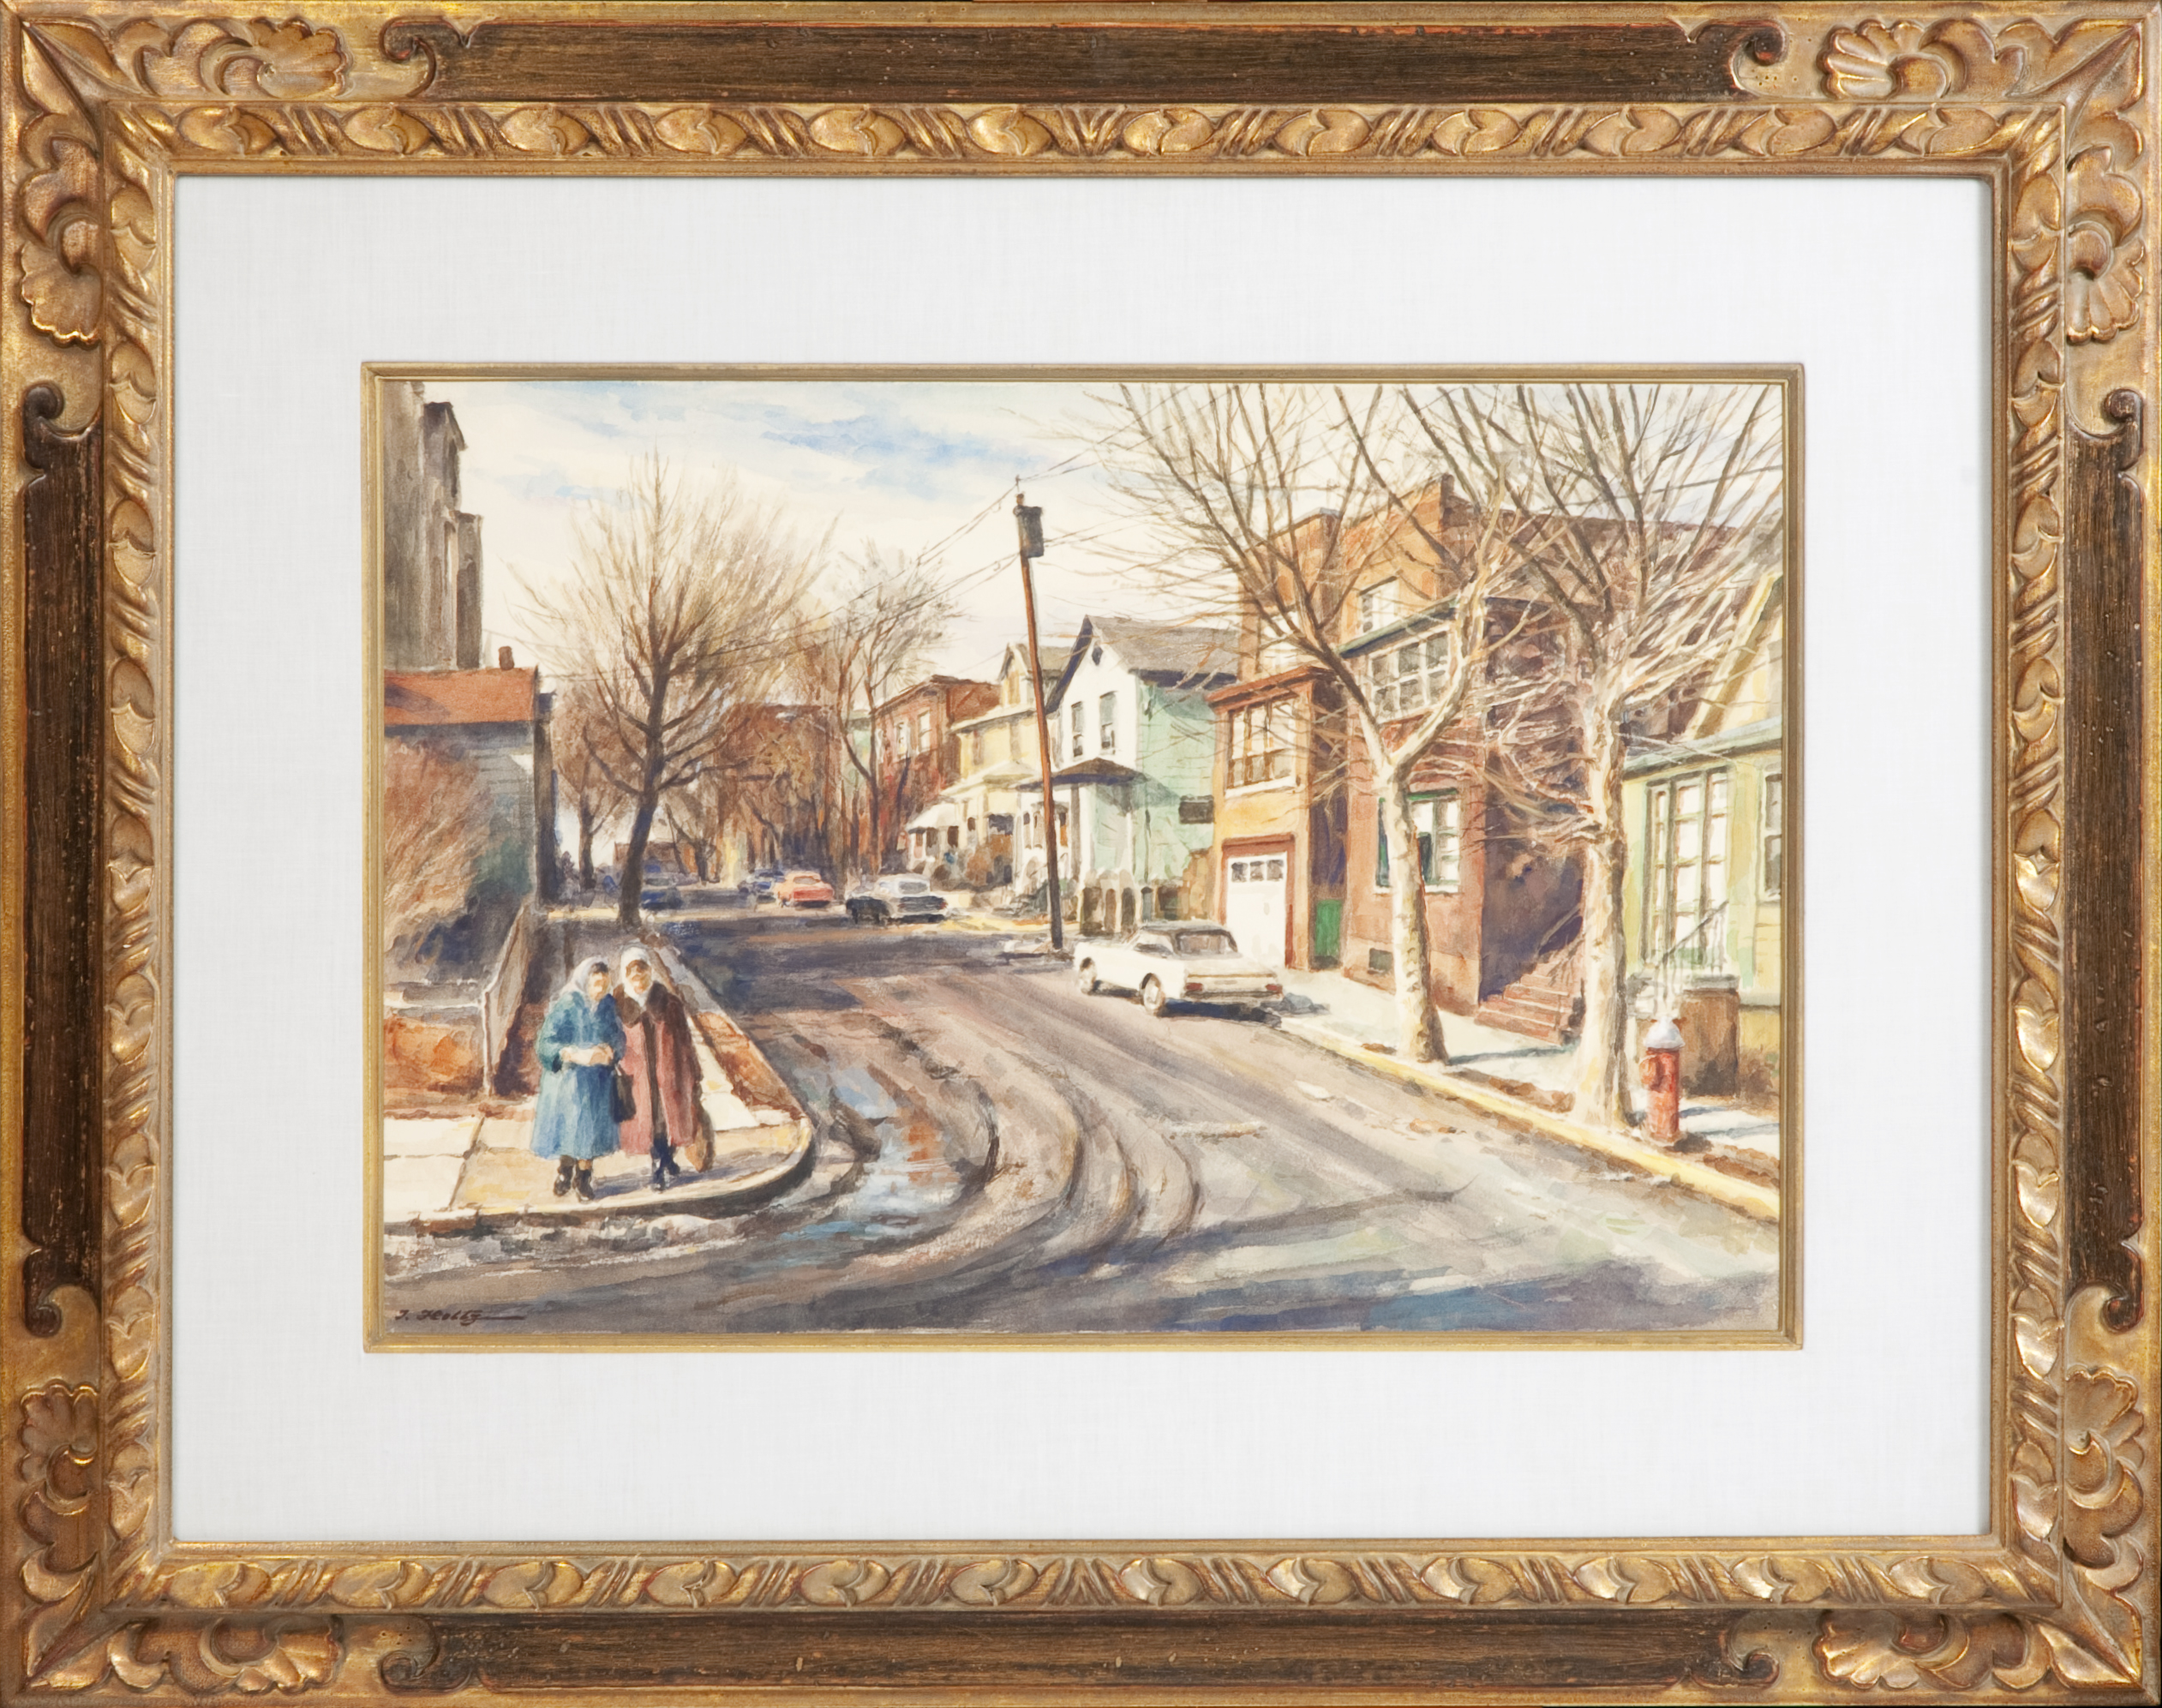 183 Street Scene New Jersey 1974 - Watercolor - 22 x 15 - Frame: 34 x 27 x 1.75